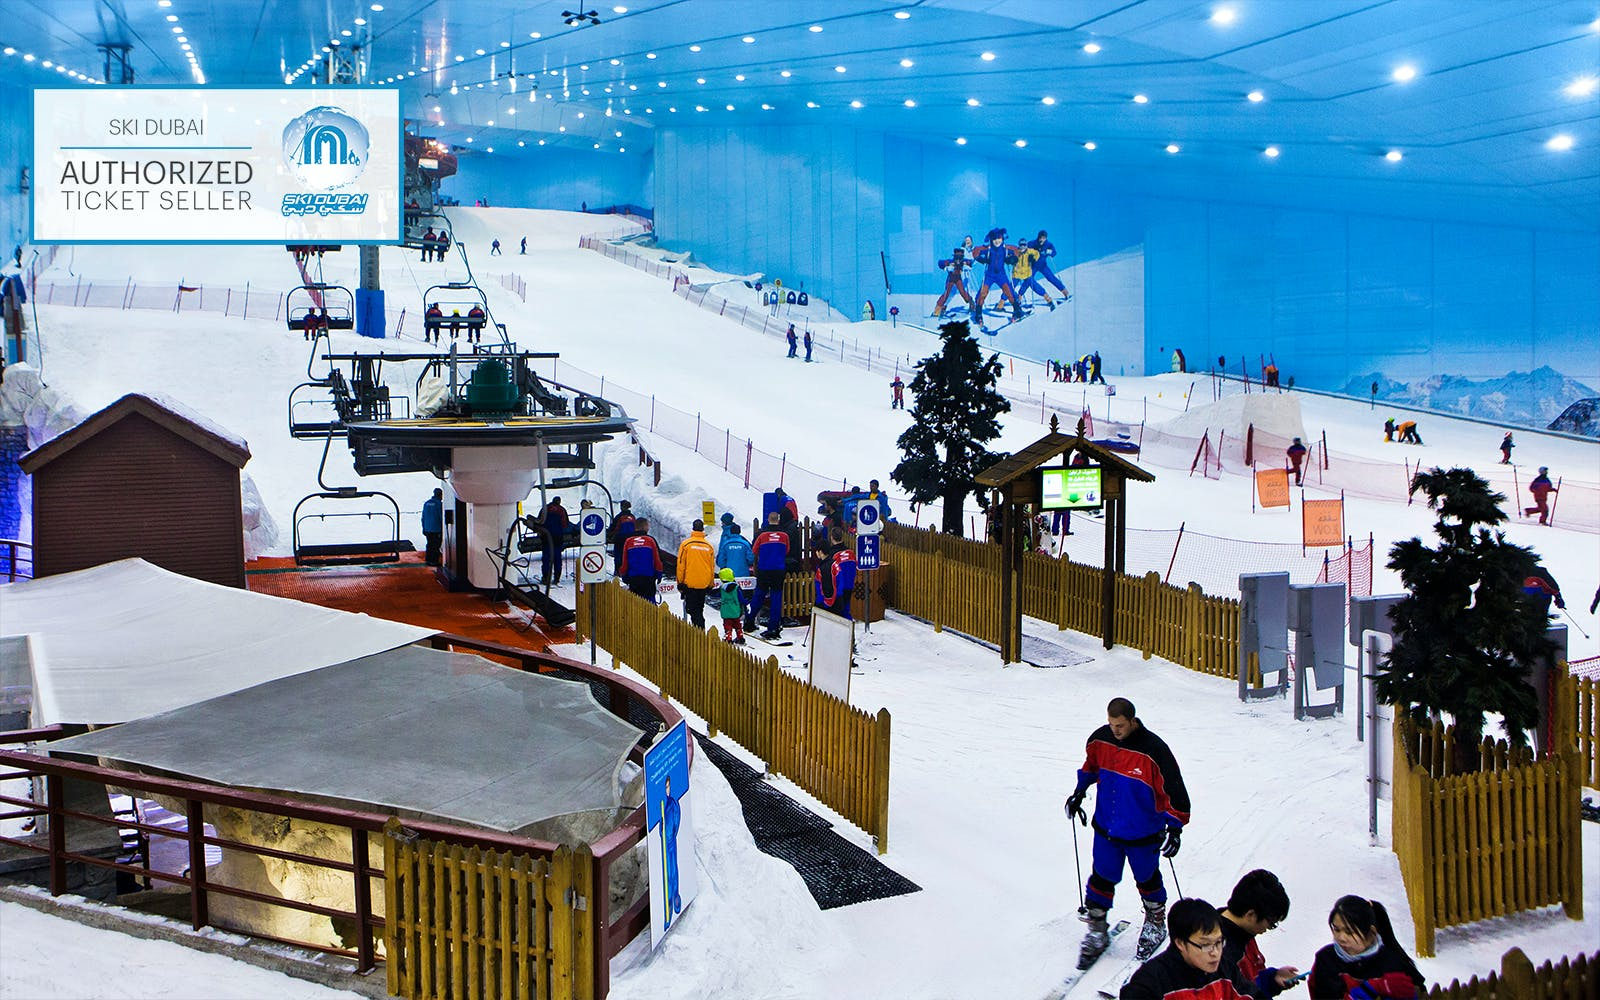 ski dubai: 2 hour skiing session-1